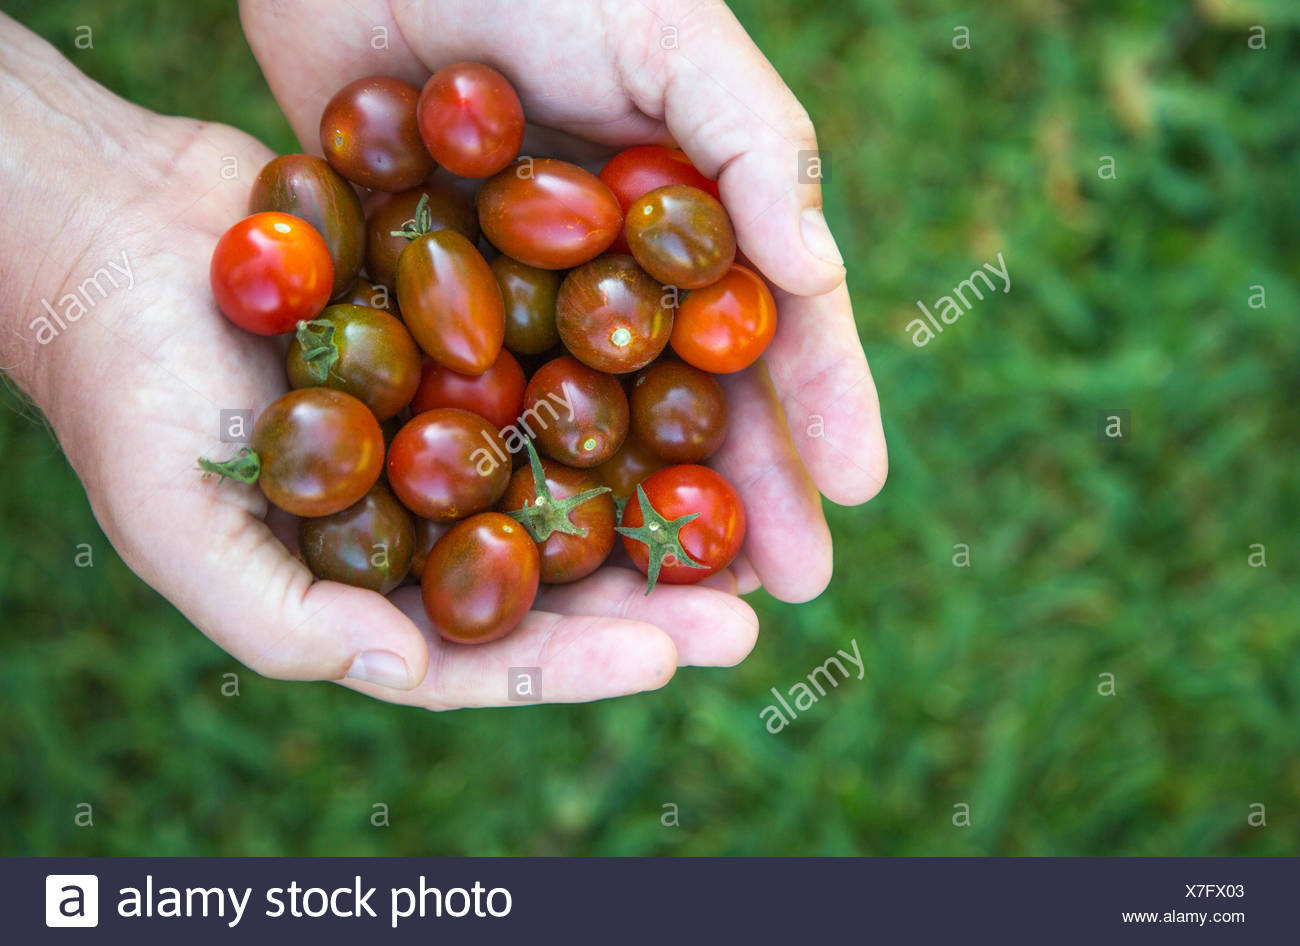 homegrown just picked cherry tomatoes, shown right side, held in the hand against grass - Stock Image